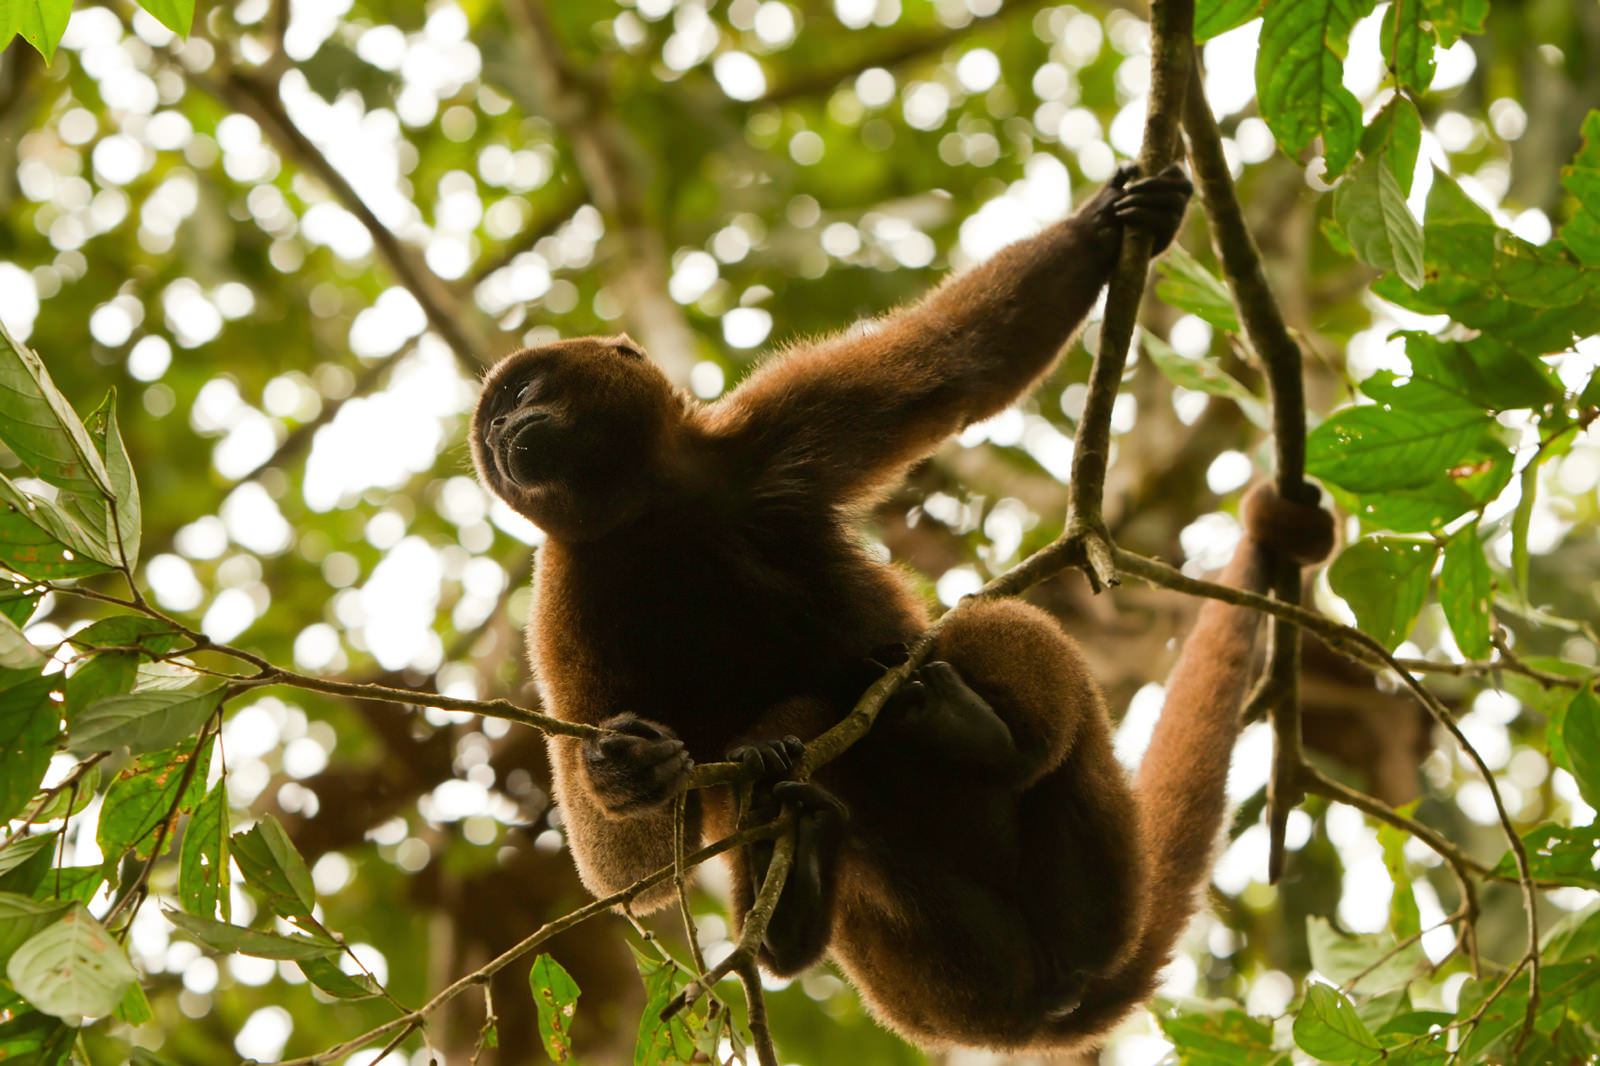 Howler monkey photo taken on Amazon kayaking trip